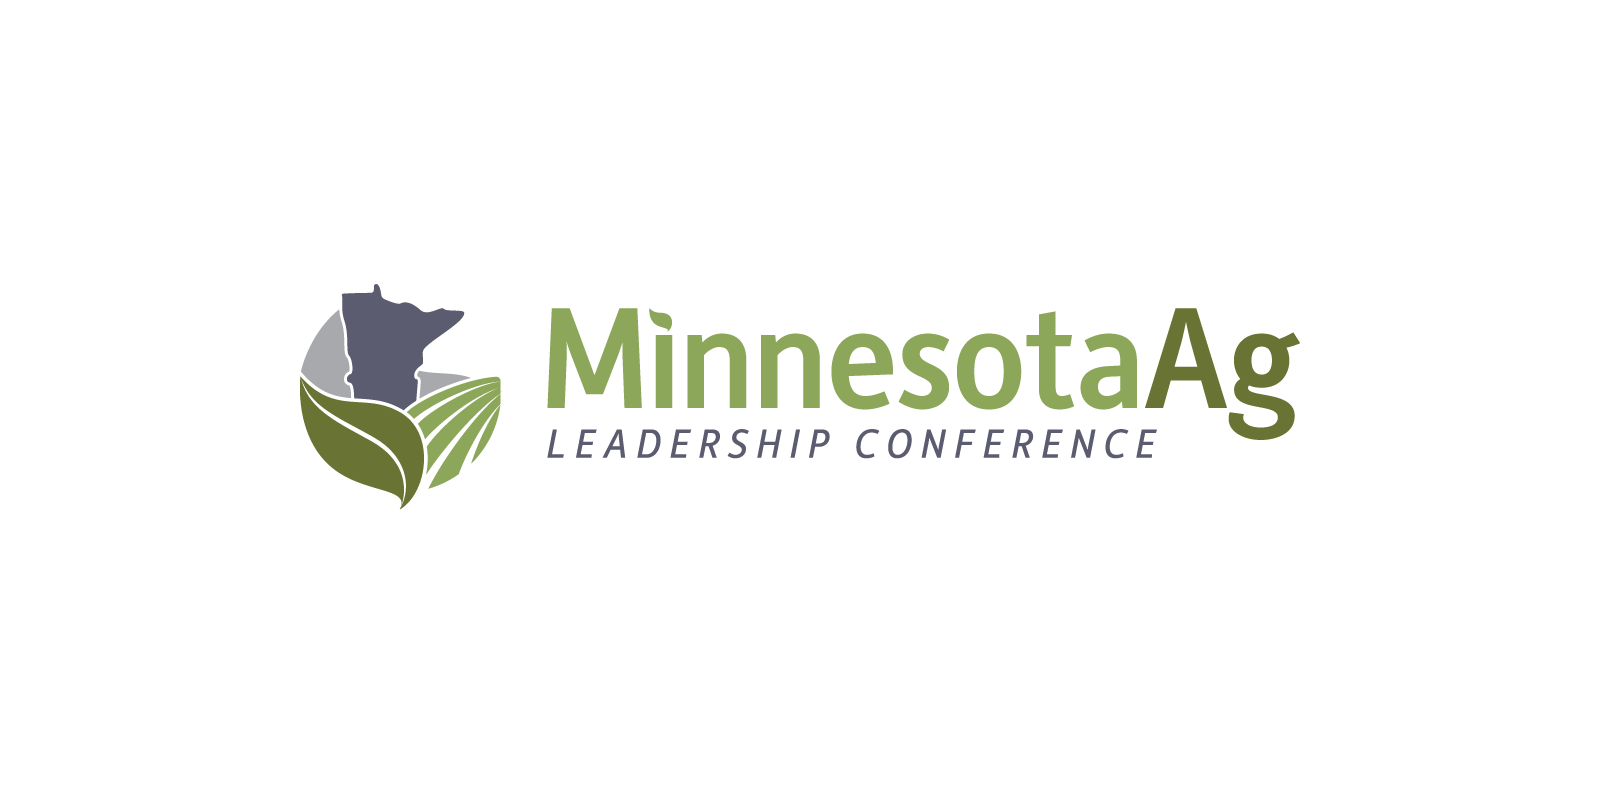 The final Minnesota Ag Leadership Conference logo